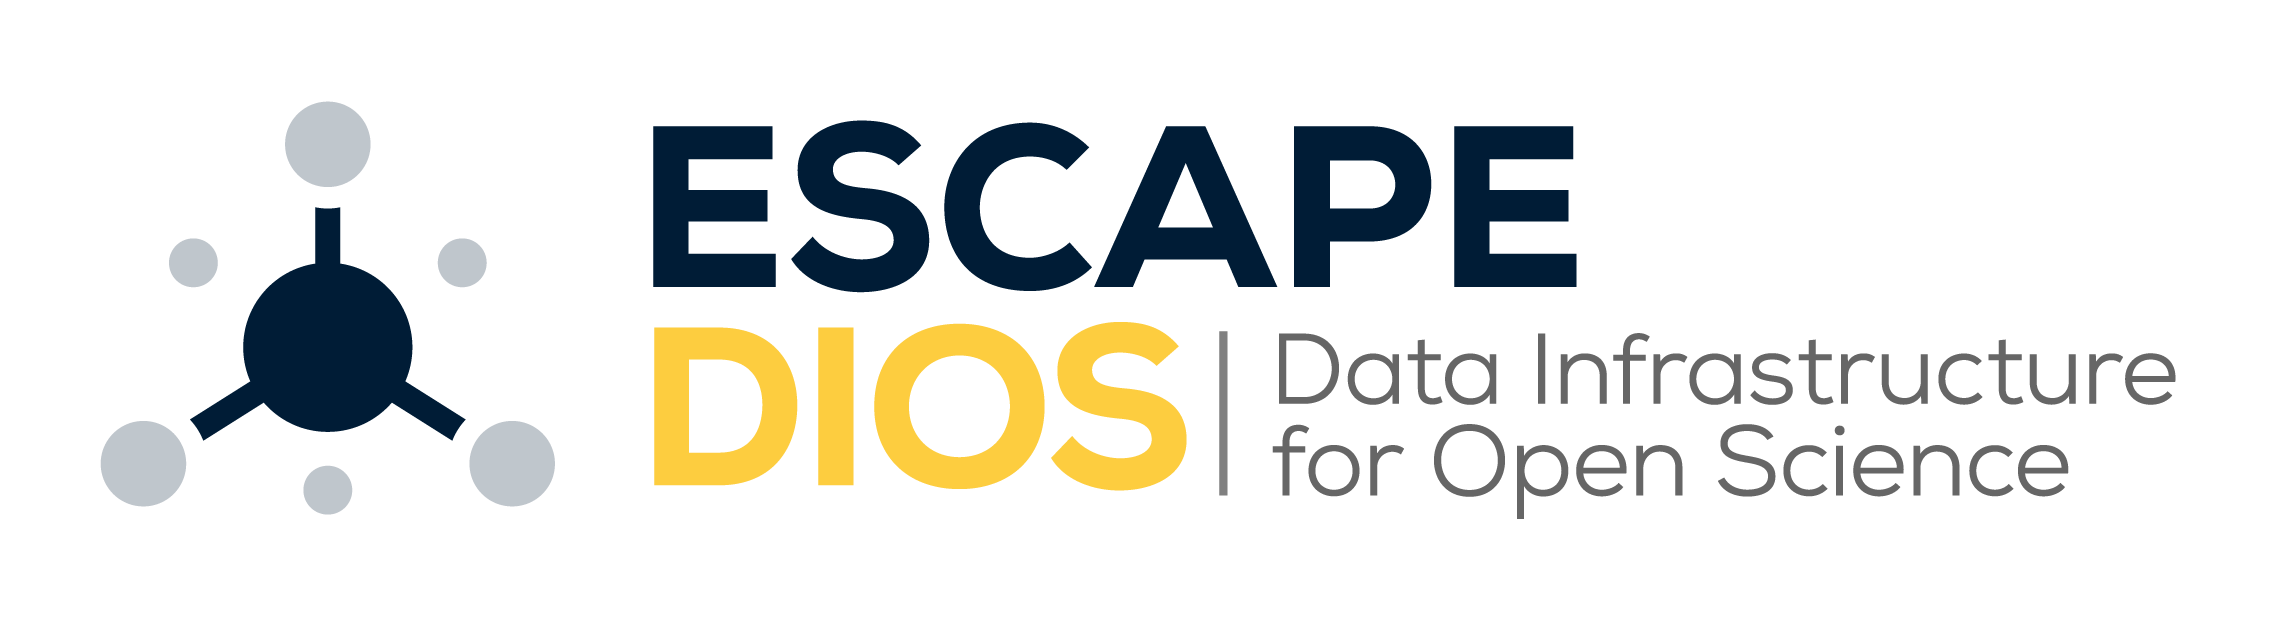 ESCAPE_DIOS Data Infrastructure for Open Science